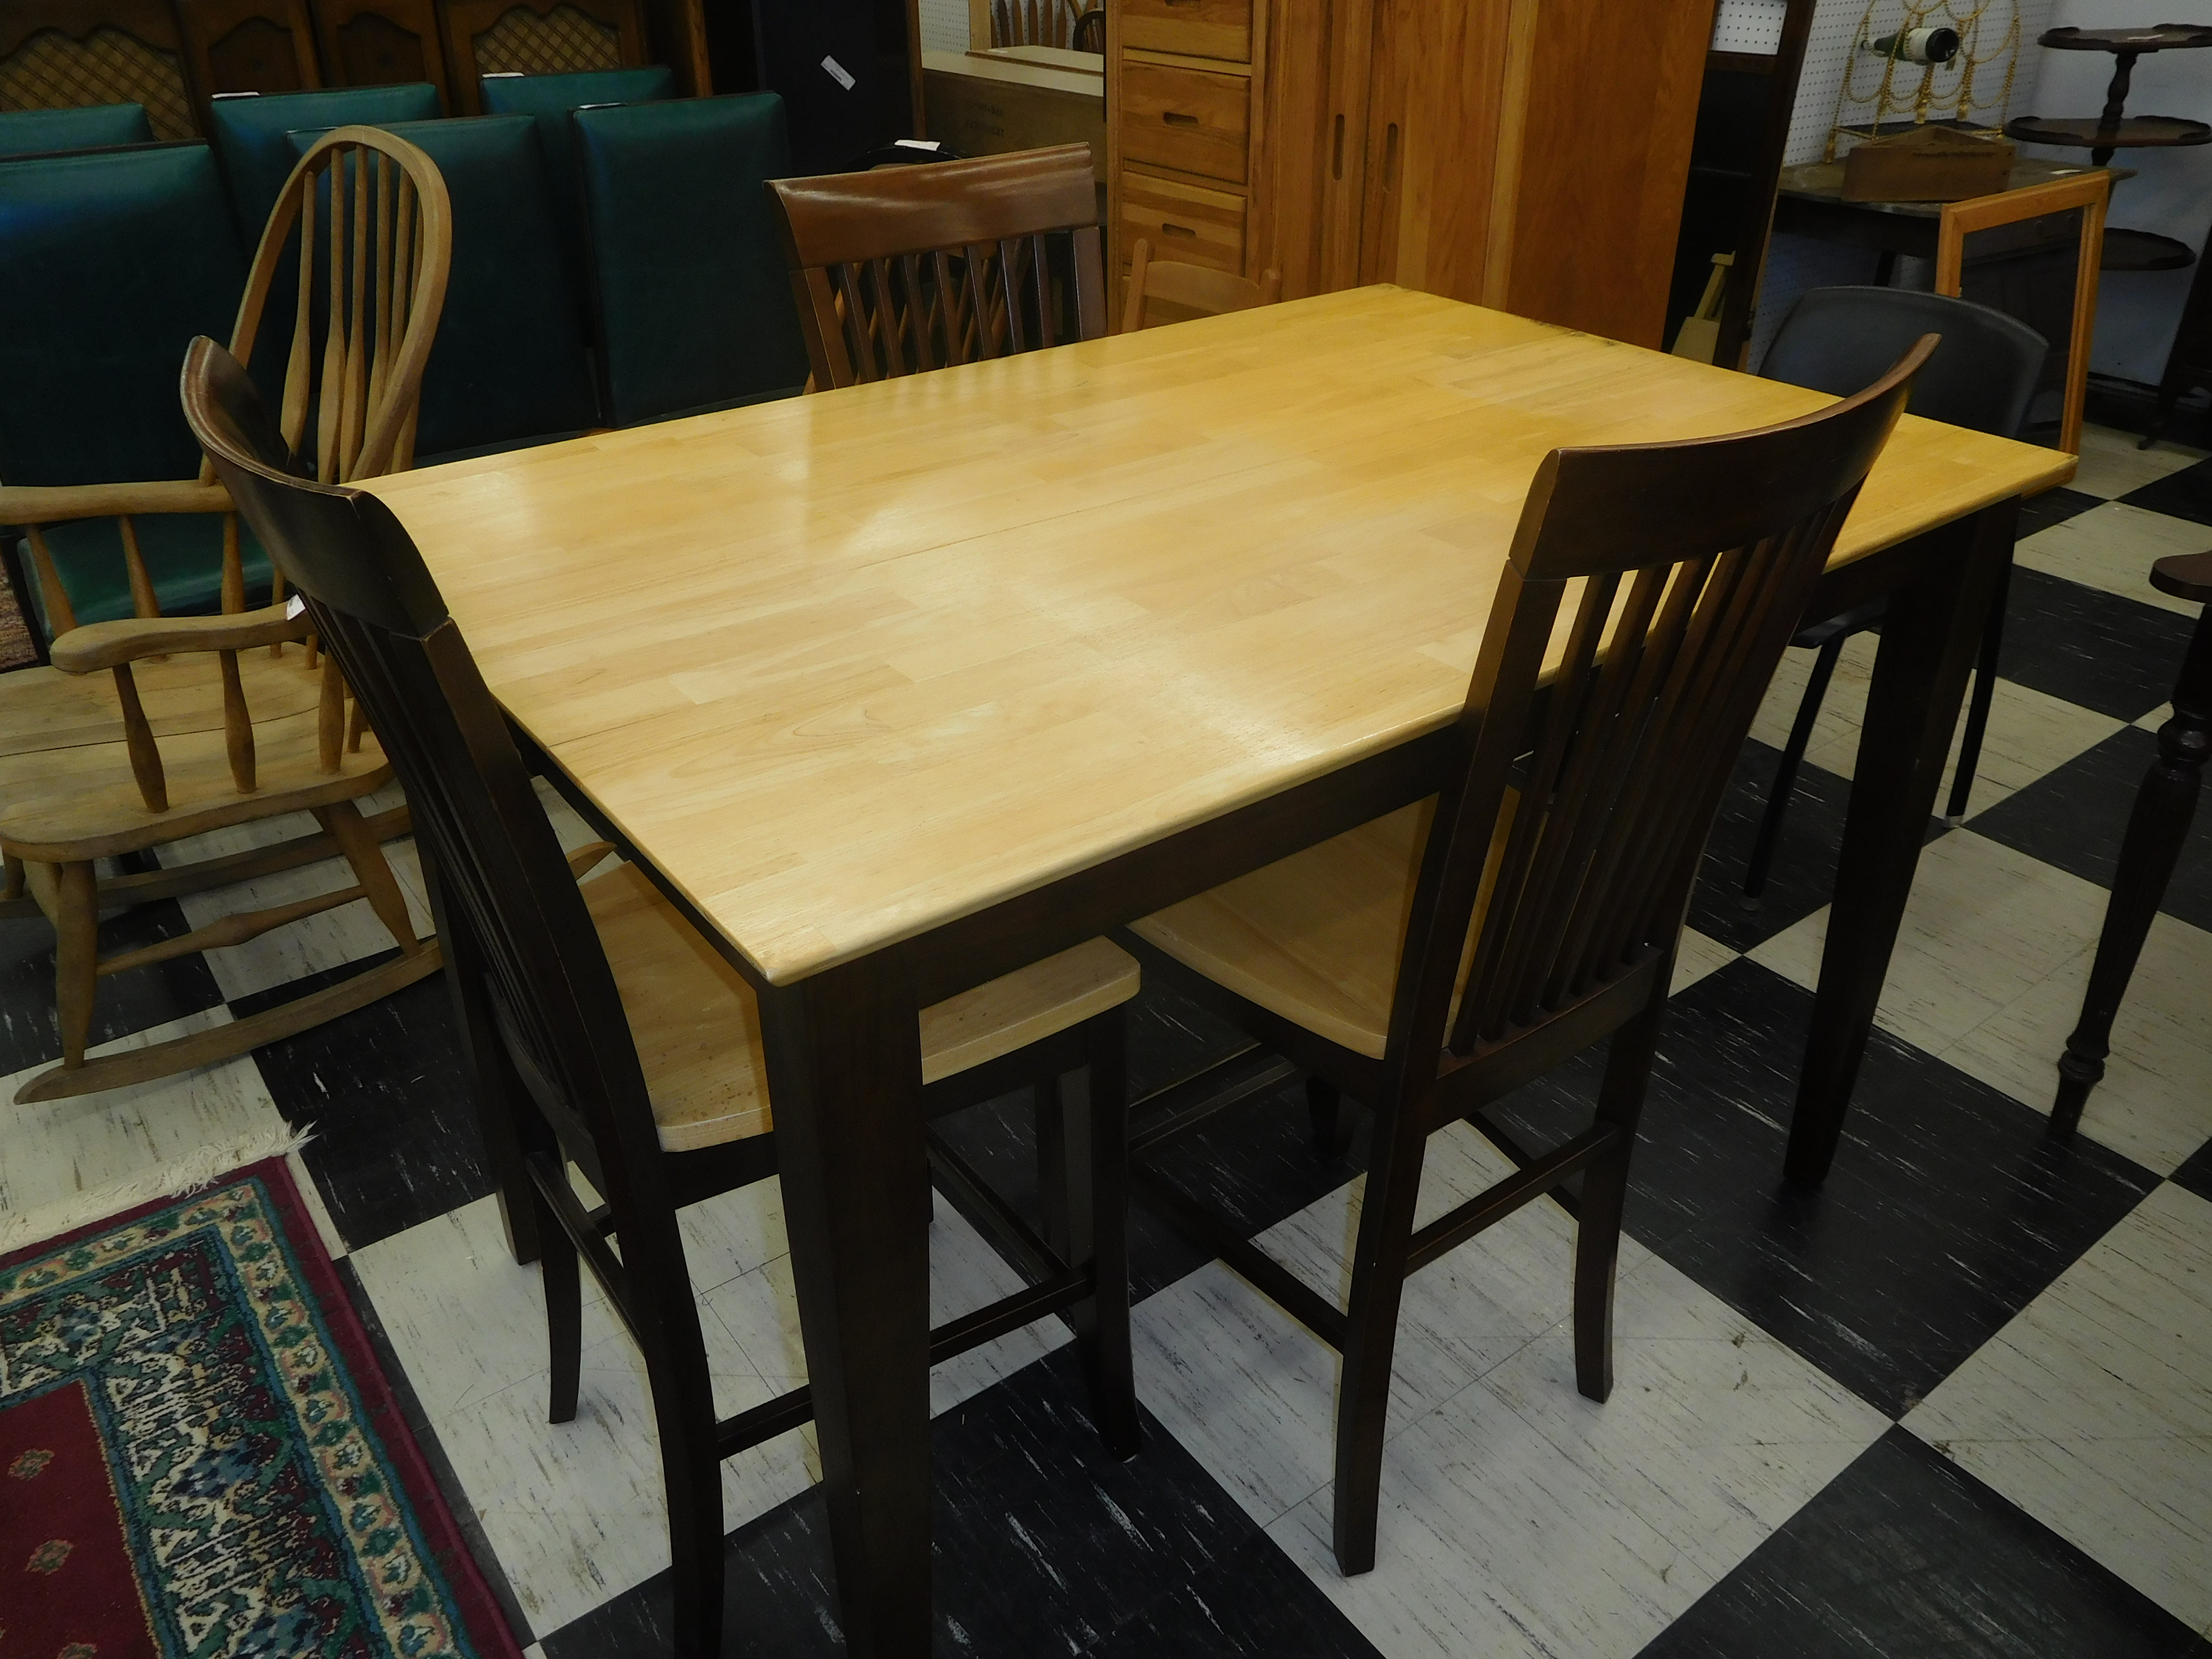 Pub Style Dining Table w/ 4 Matching Slat Back Chairs